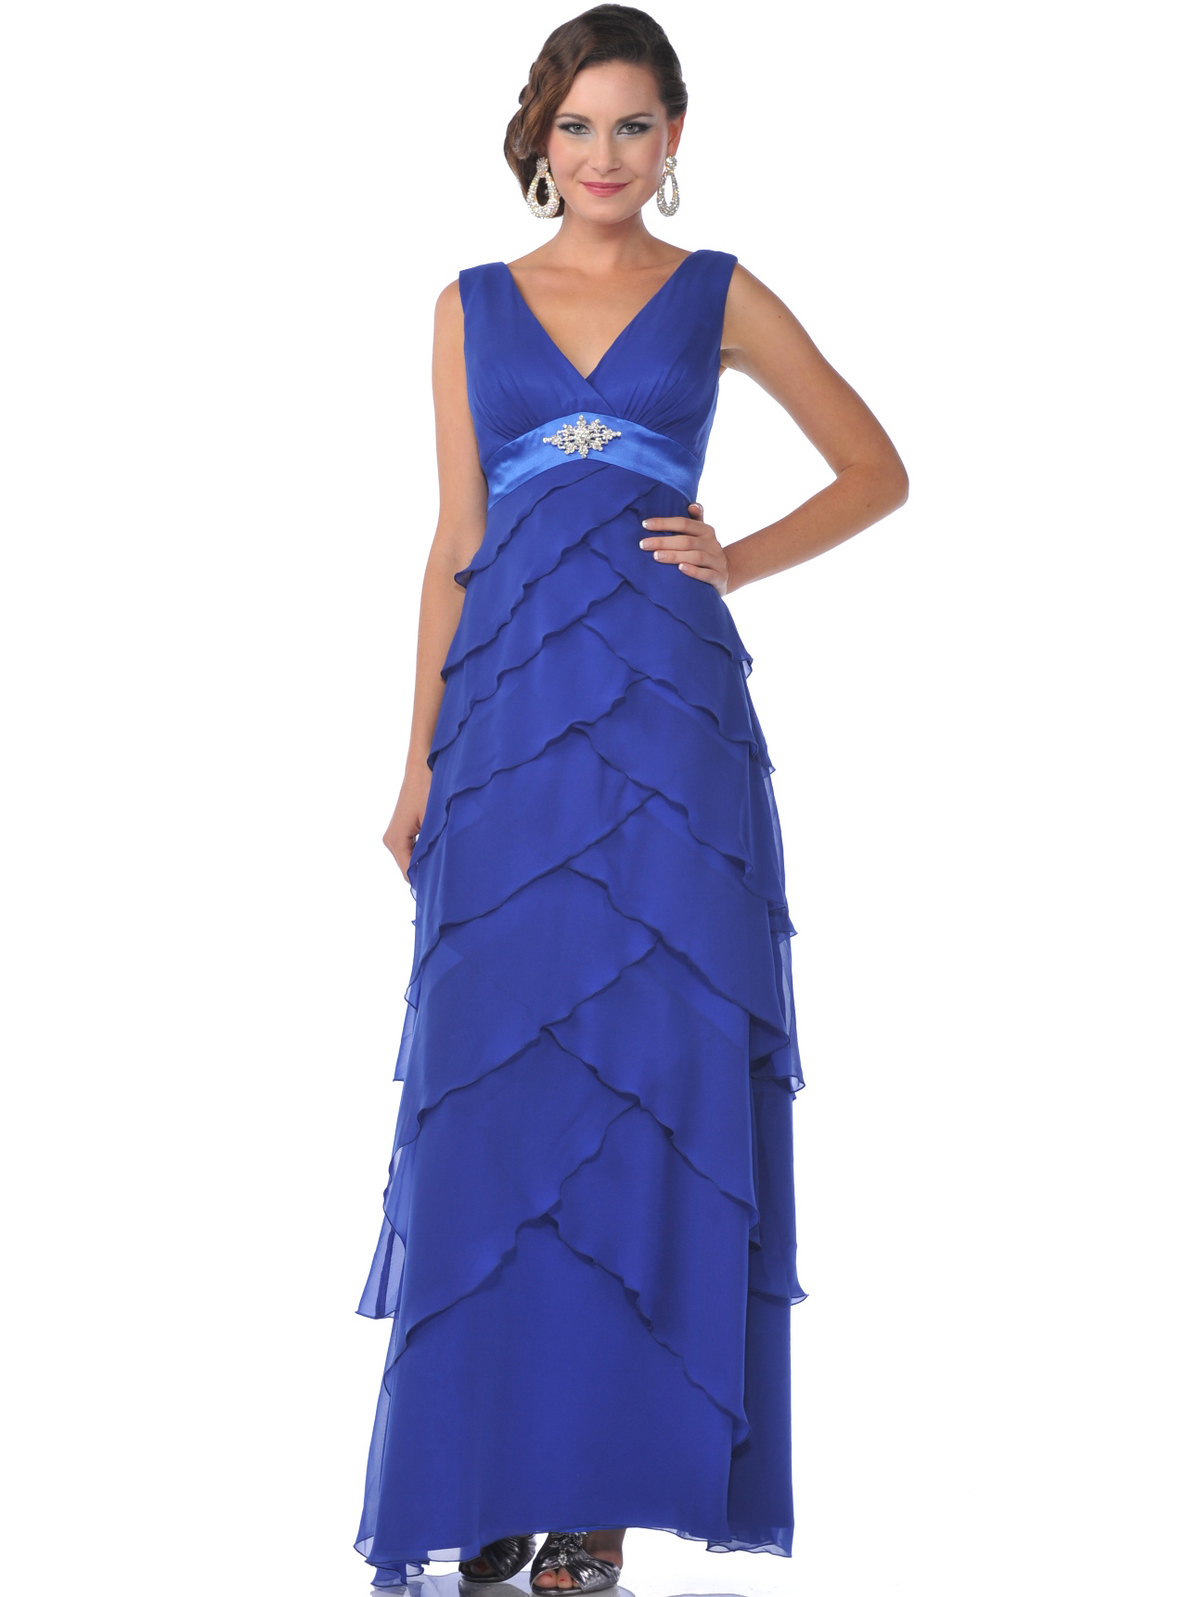 Chiffon Tiered Evening Dress | Sung Boutique L.A.